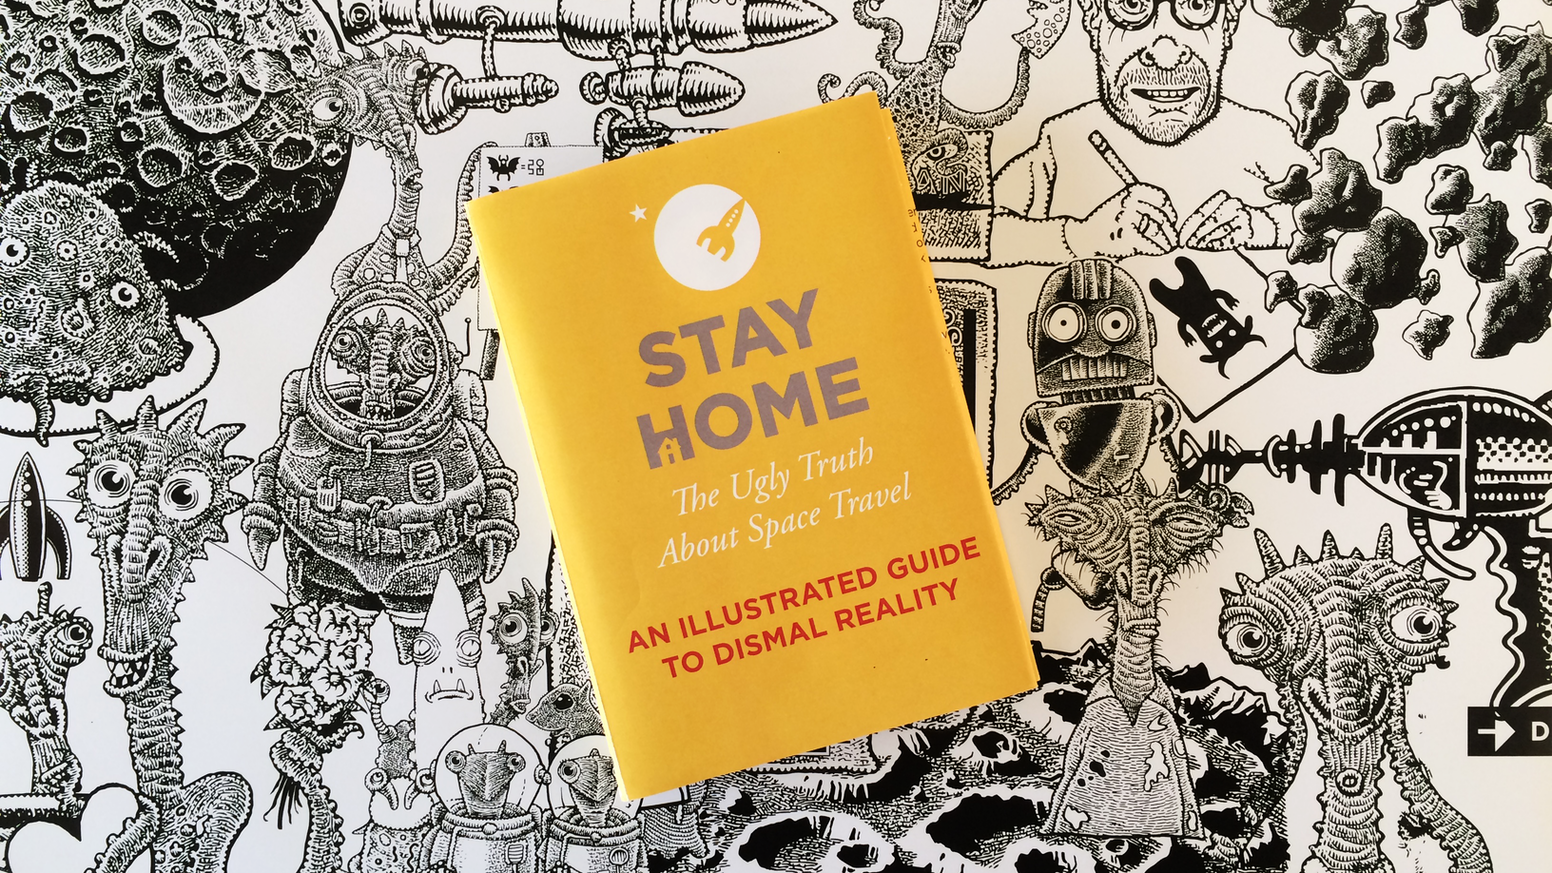 Stay Home: Book reveals the ugly truth about space travel